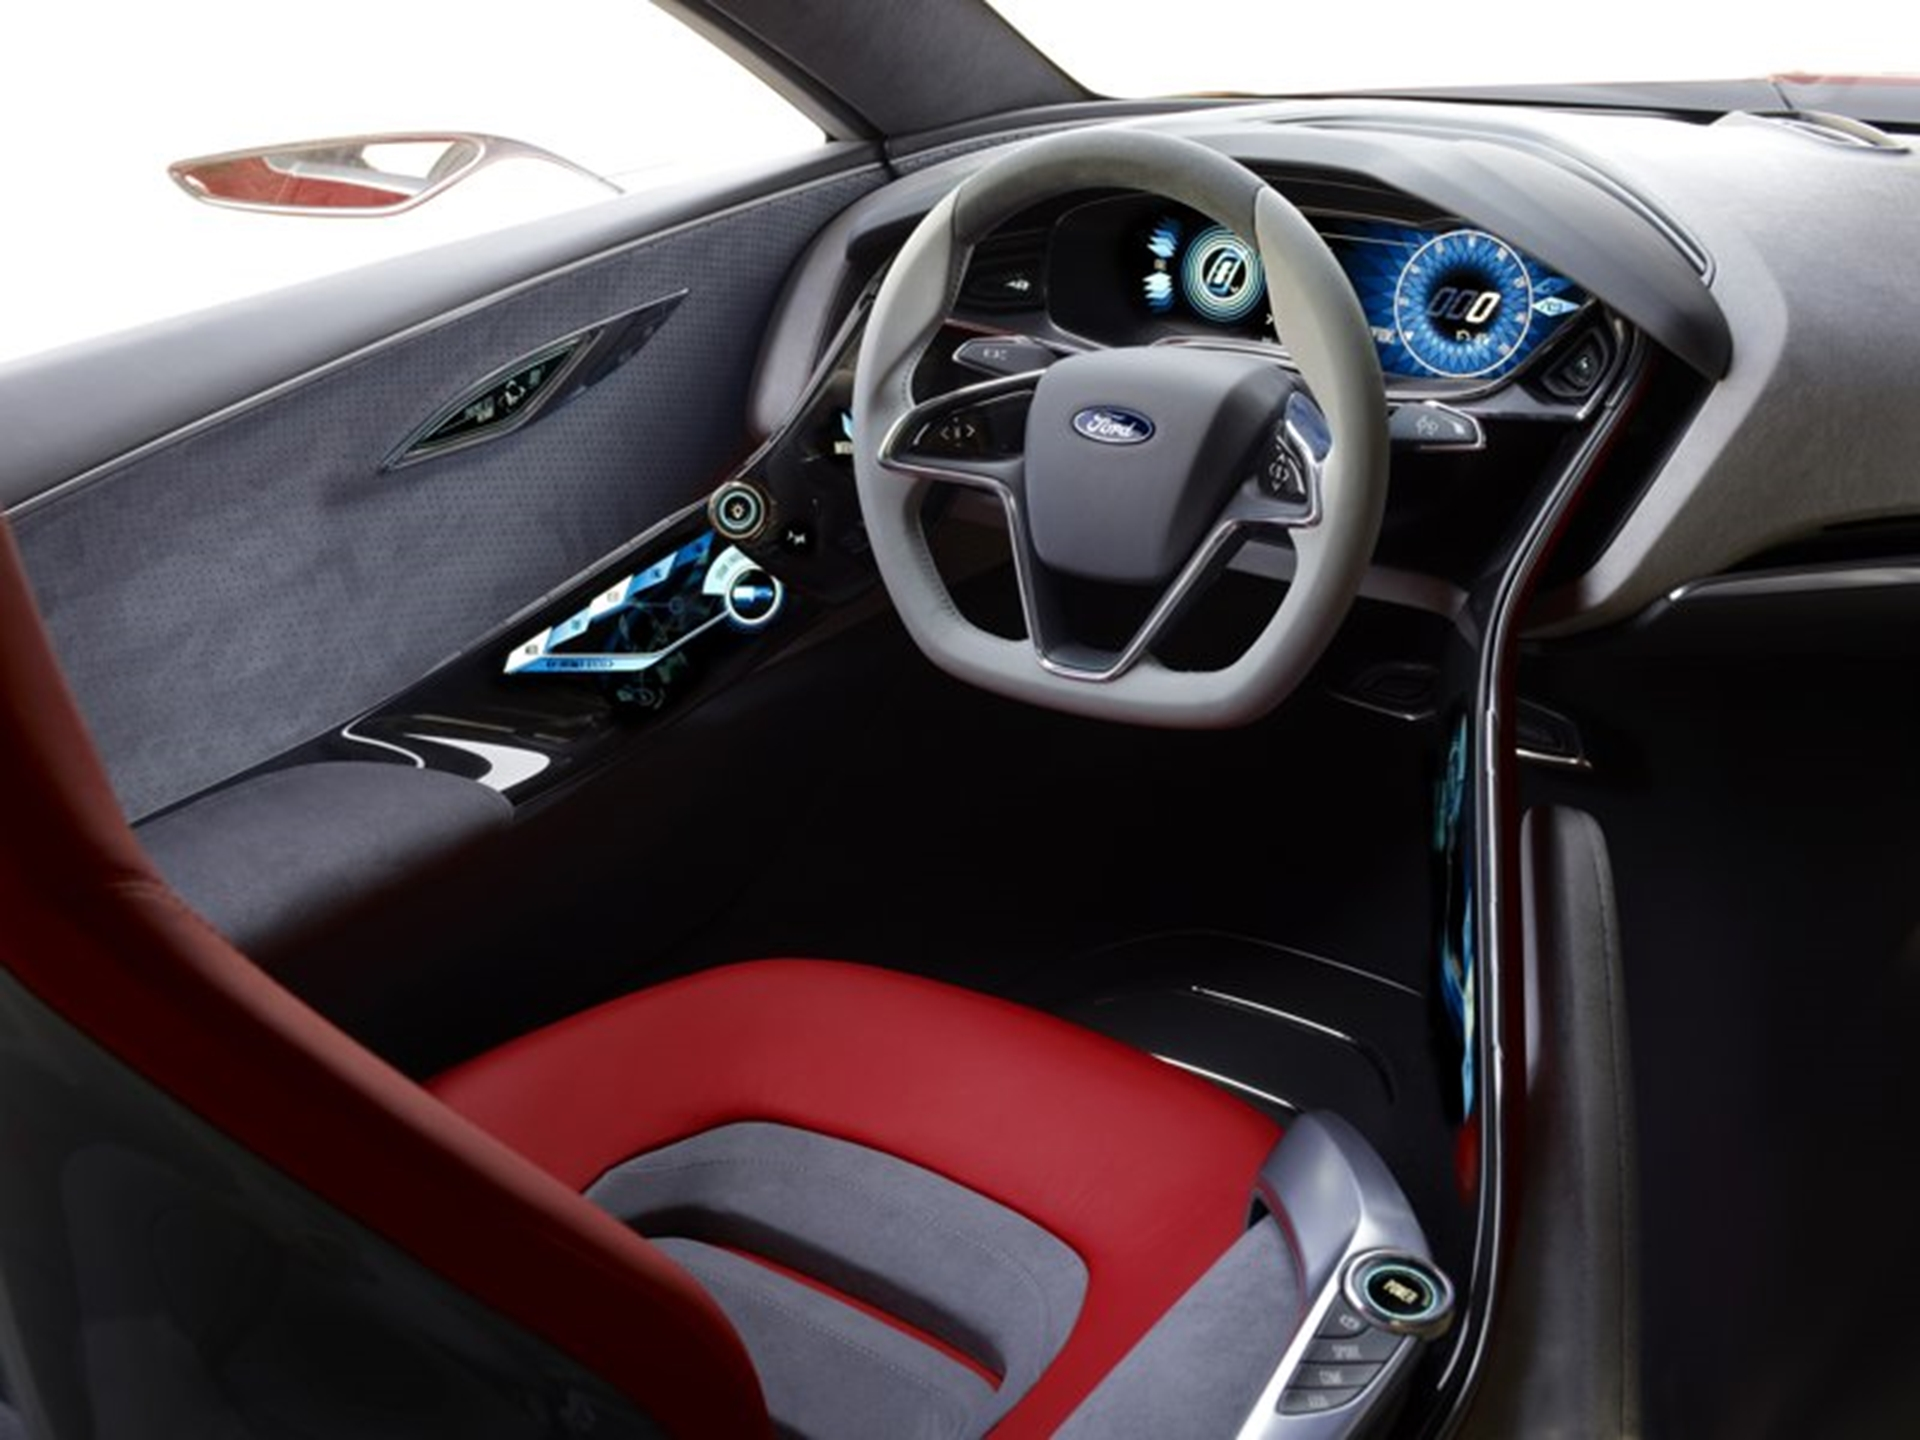 Ford Concept Car 2011 Interior